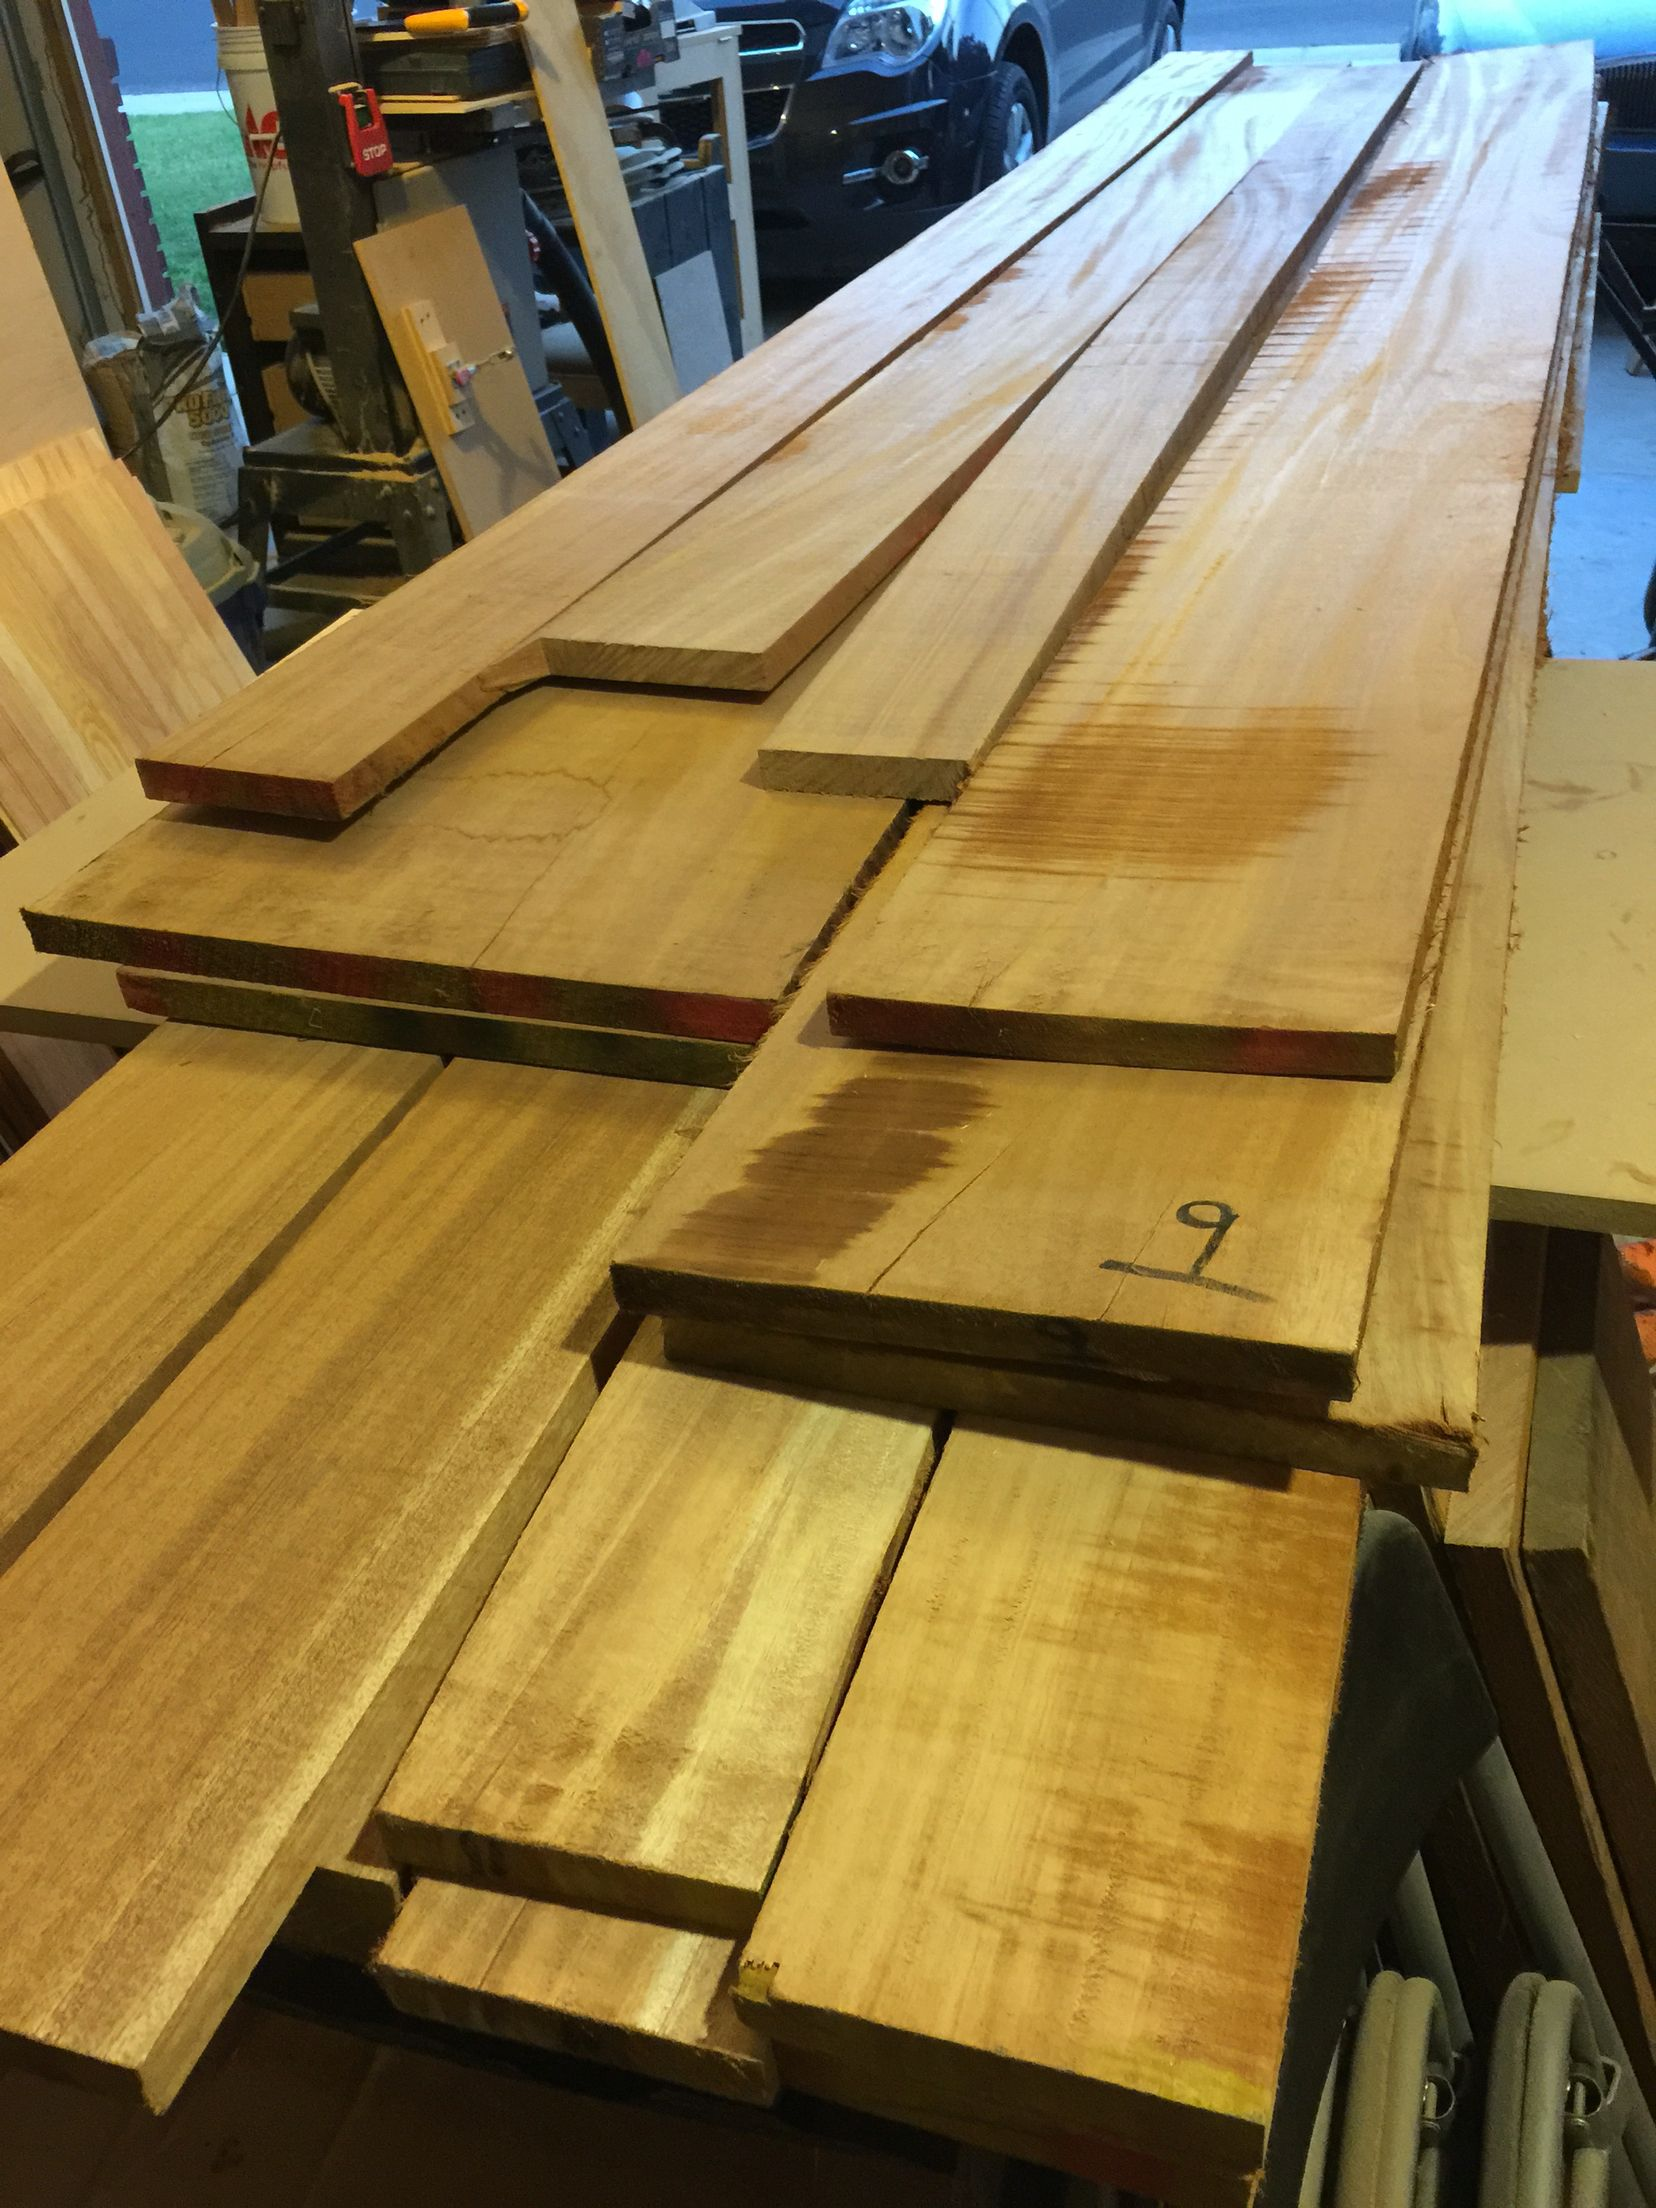 African Mahogany Wood For My Son S Baby Crib He Is Due In September 2016 There Is 100 Board Feet Of African Mahogany Wood Beautiful Wood Mahogany Wood